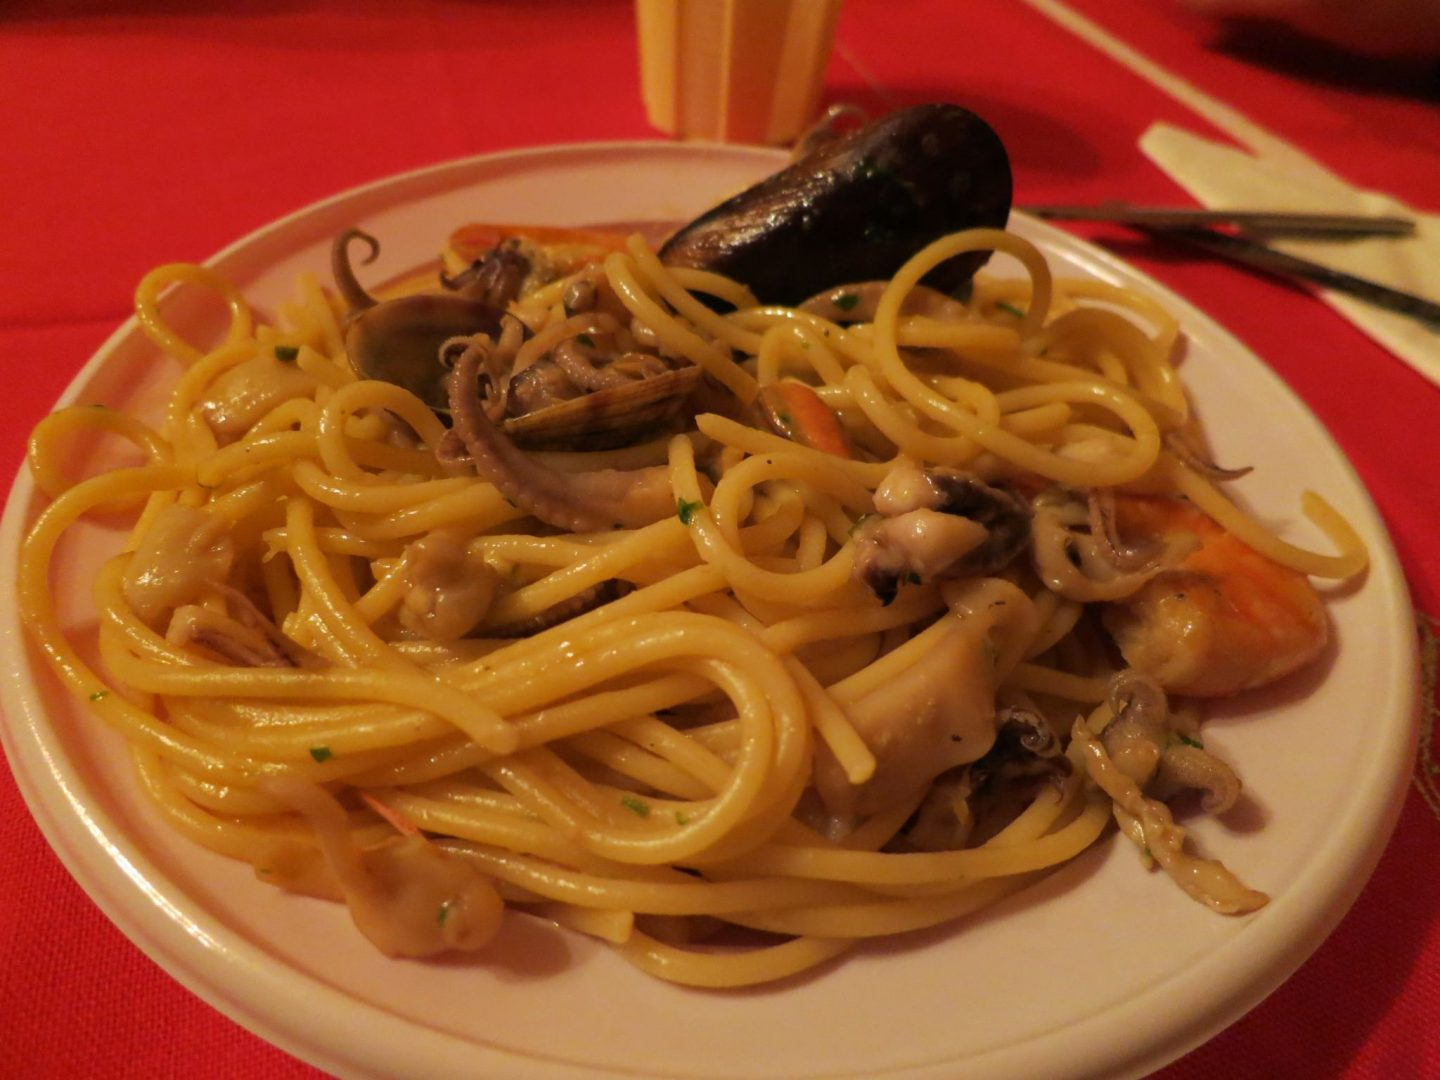 Spaghetti with various seafood